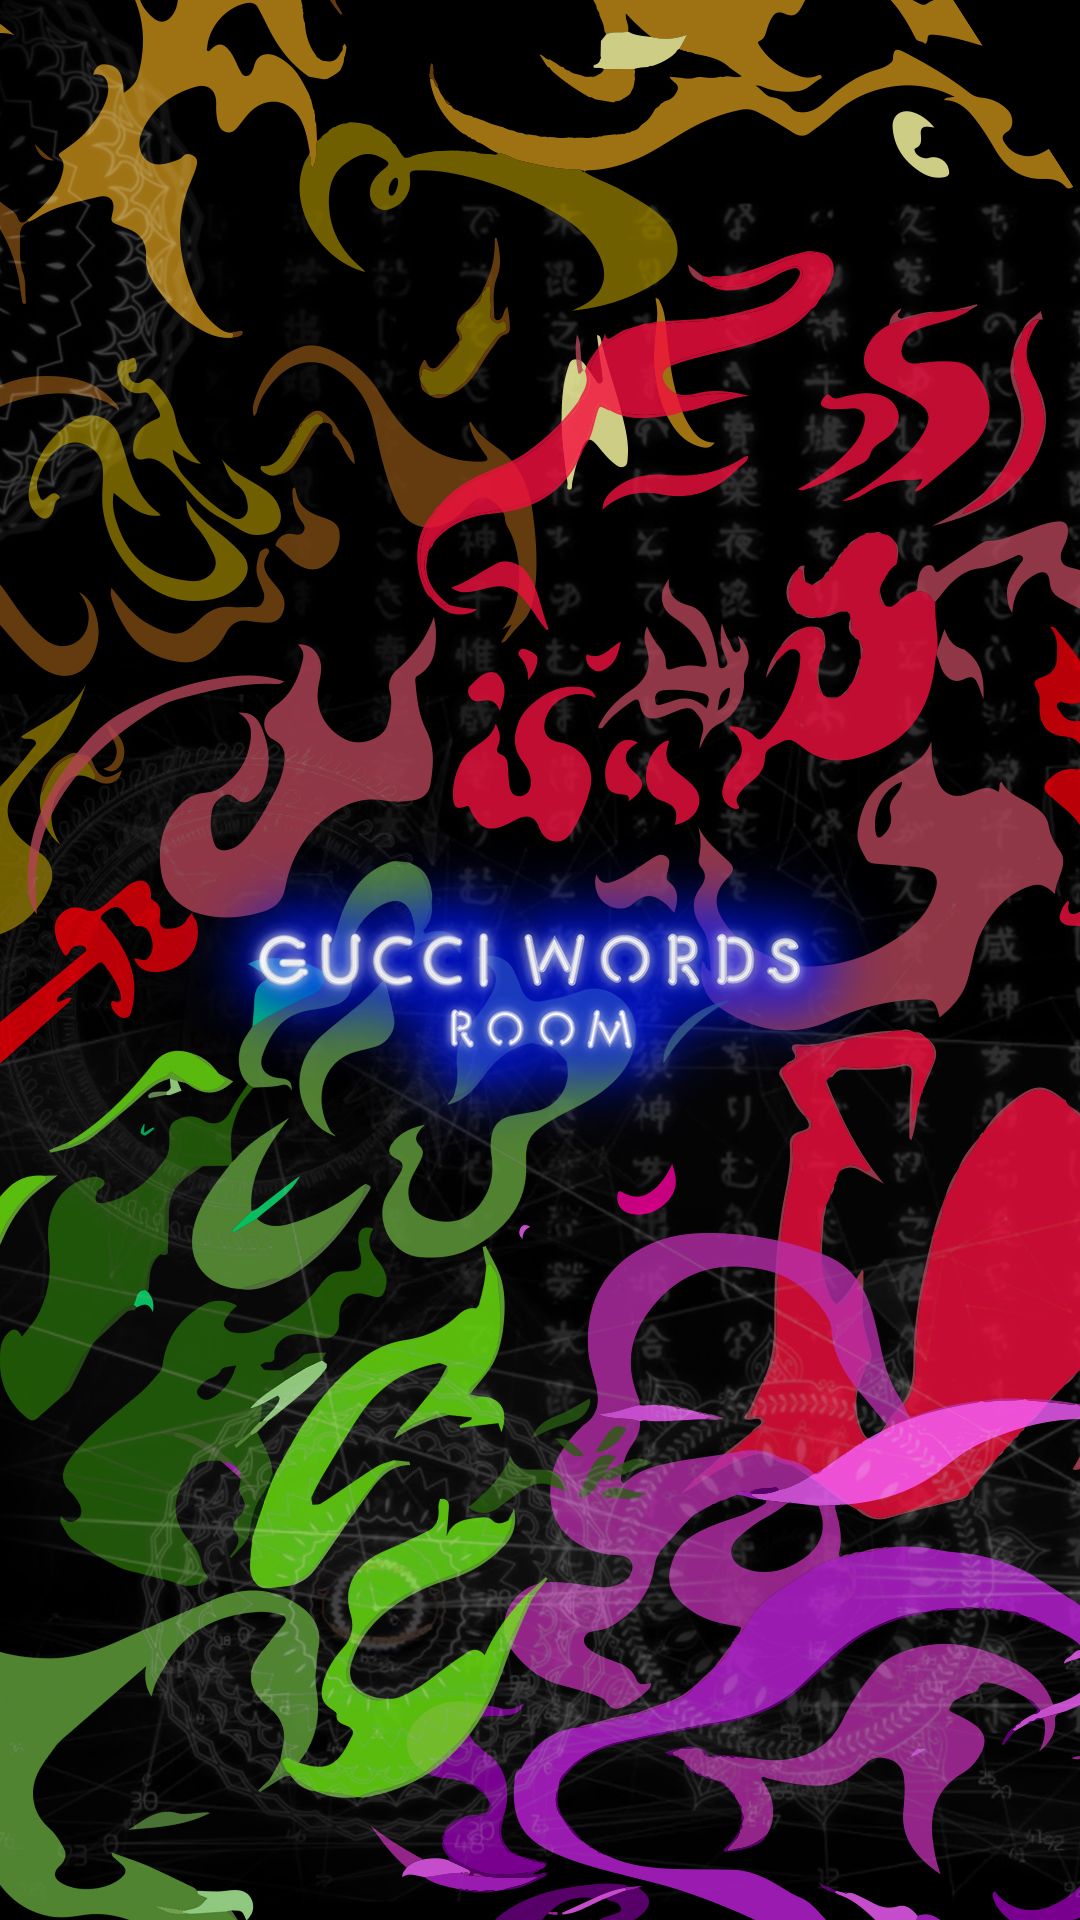 Gucci 4 Rooms Wallpapers Gucci Official Site United States 1080x1920